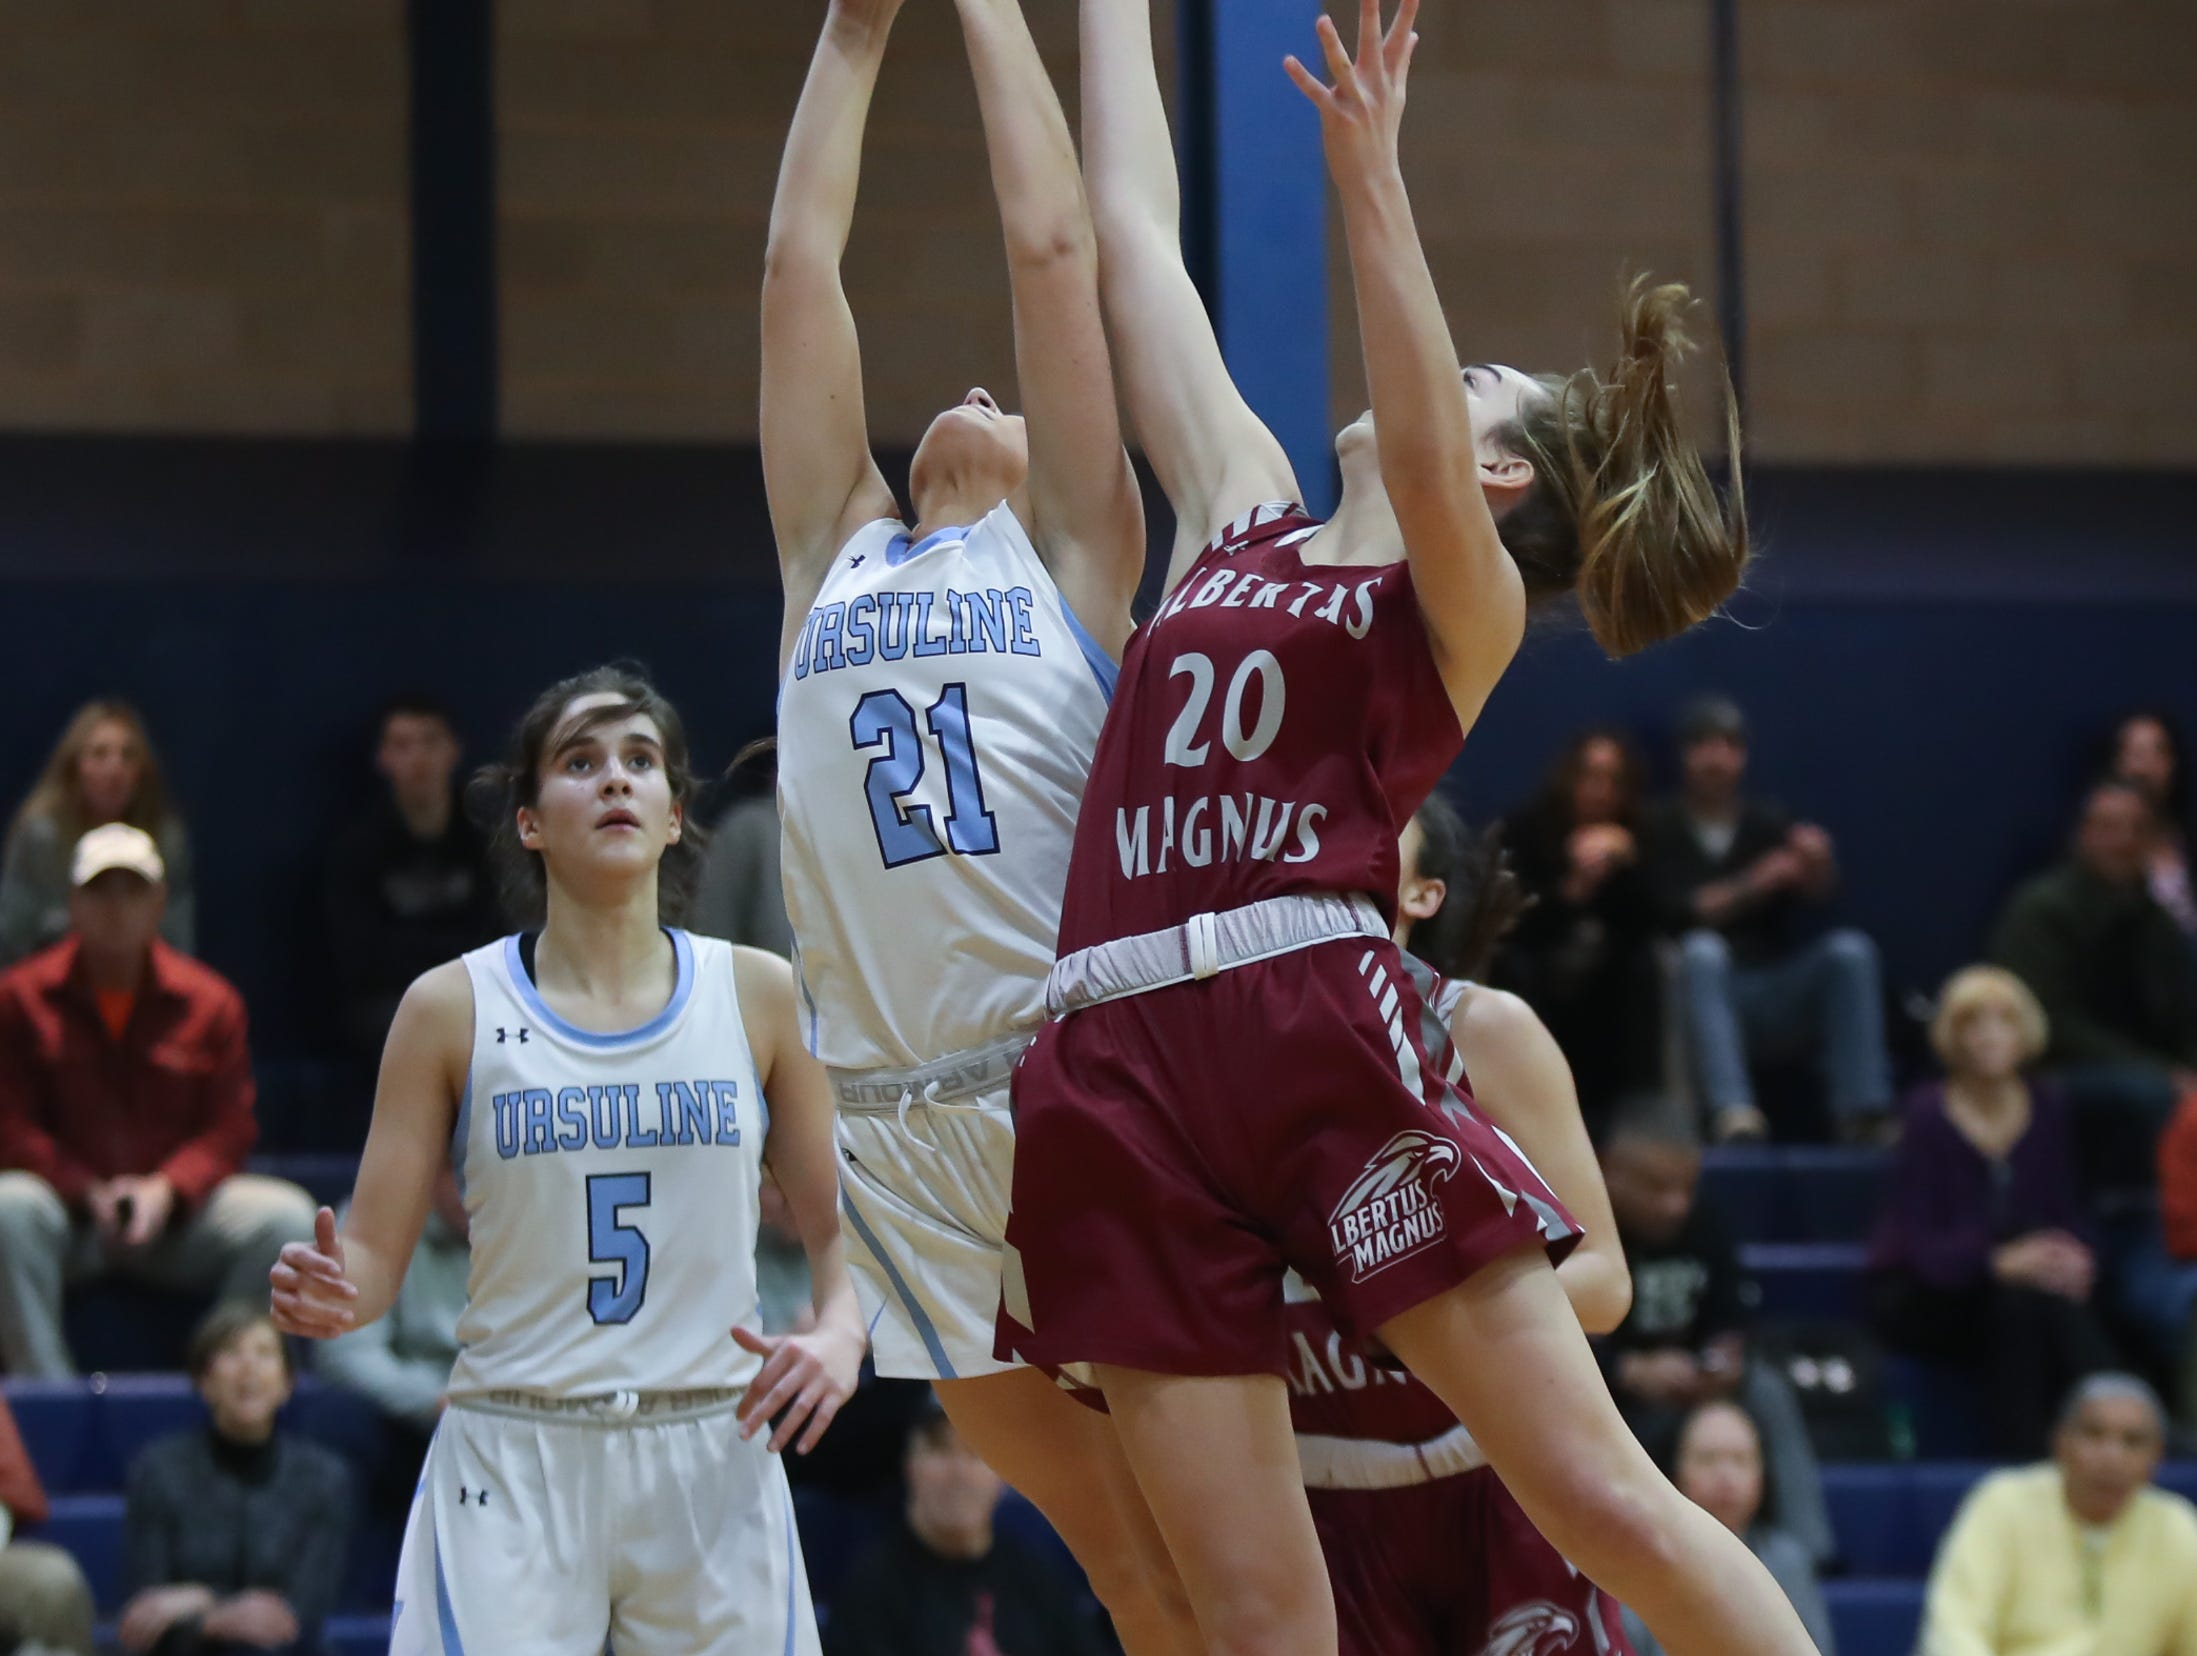 Ursuline's Carloine Brennan (21) and Albertus' Sam Bischoff (20) work to pull in a rebound during girls varsity basketball action at The Ursuline School in New Rochelle on Wednesday, January 9, 2019.  Ursuline defeated Albertus 68-48.